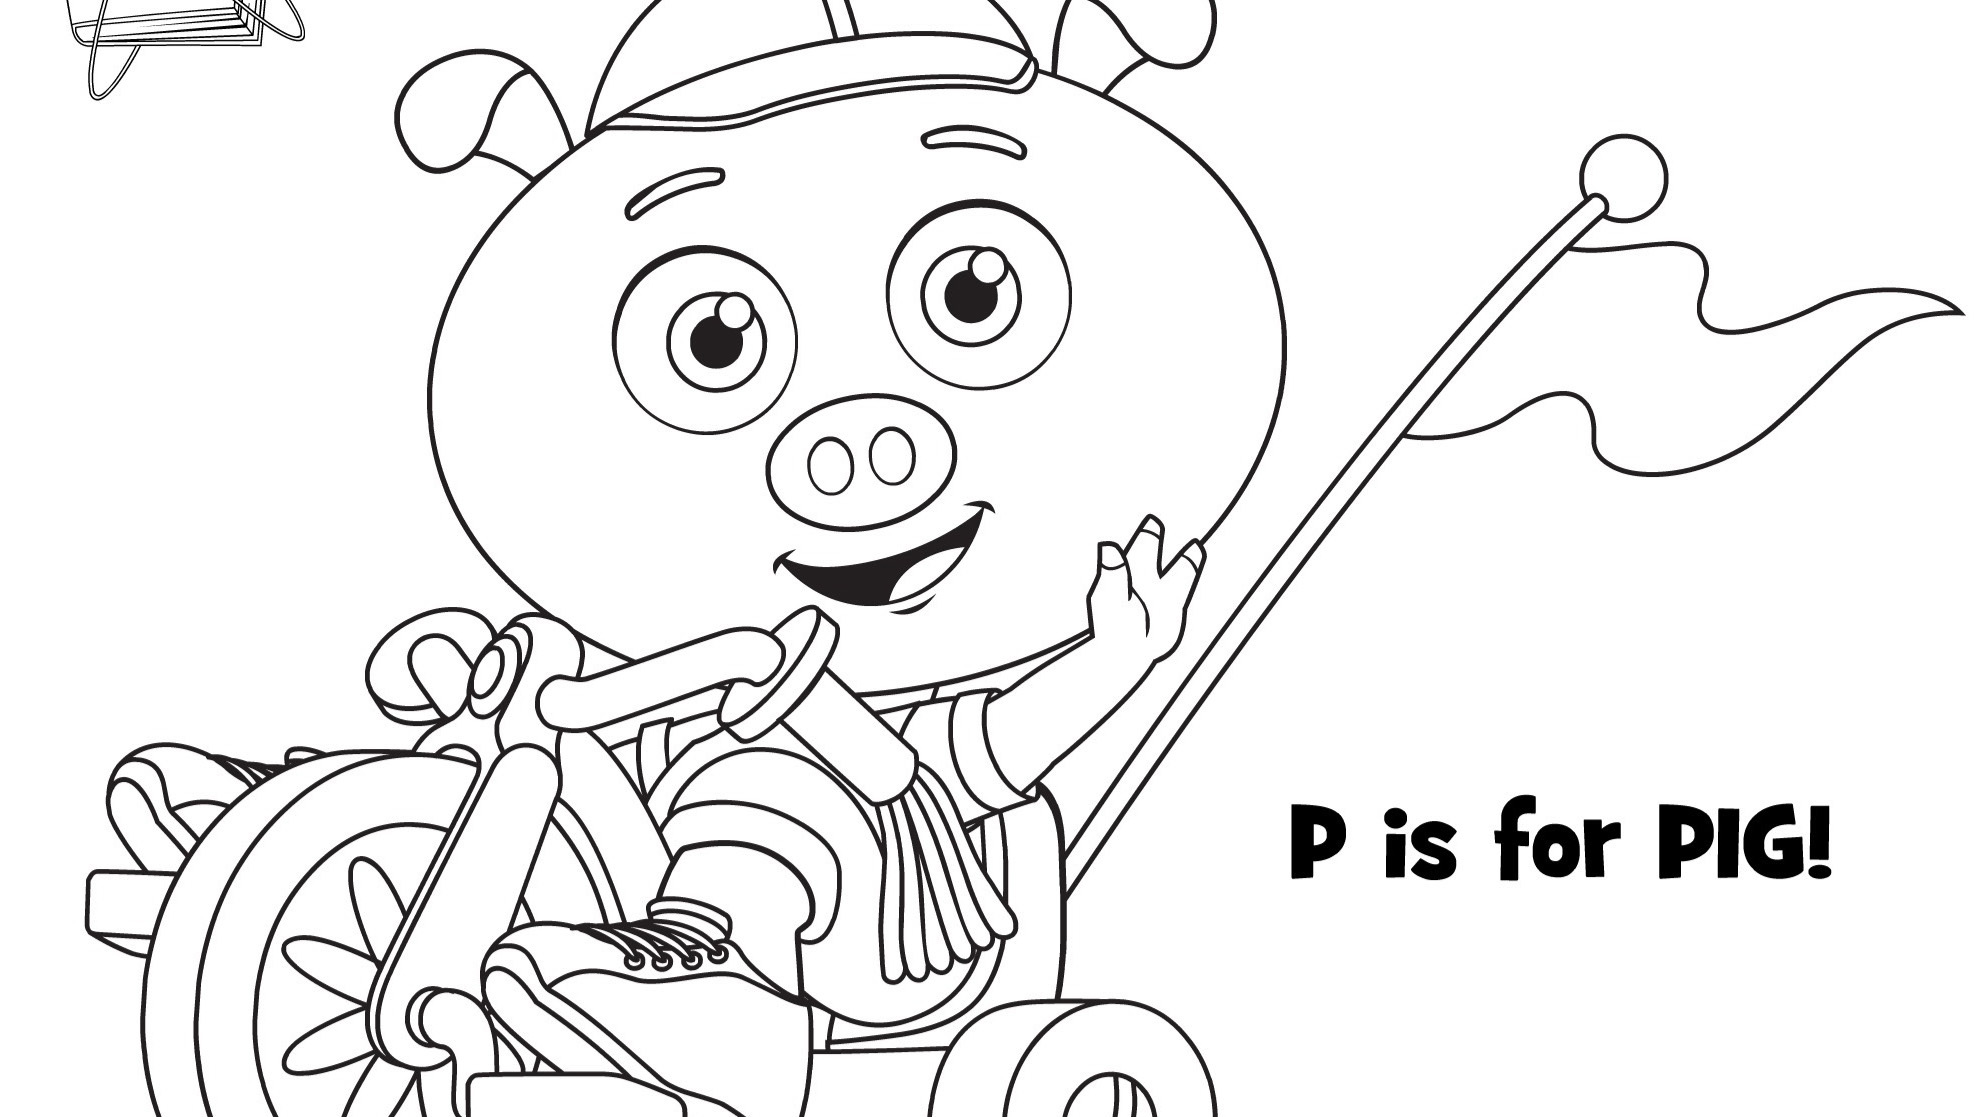 P Is For Pig Coloring Page Kids Coloring Pbs Kids For Parents